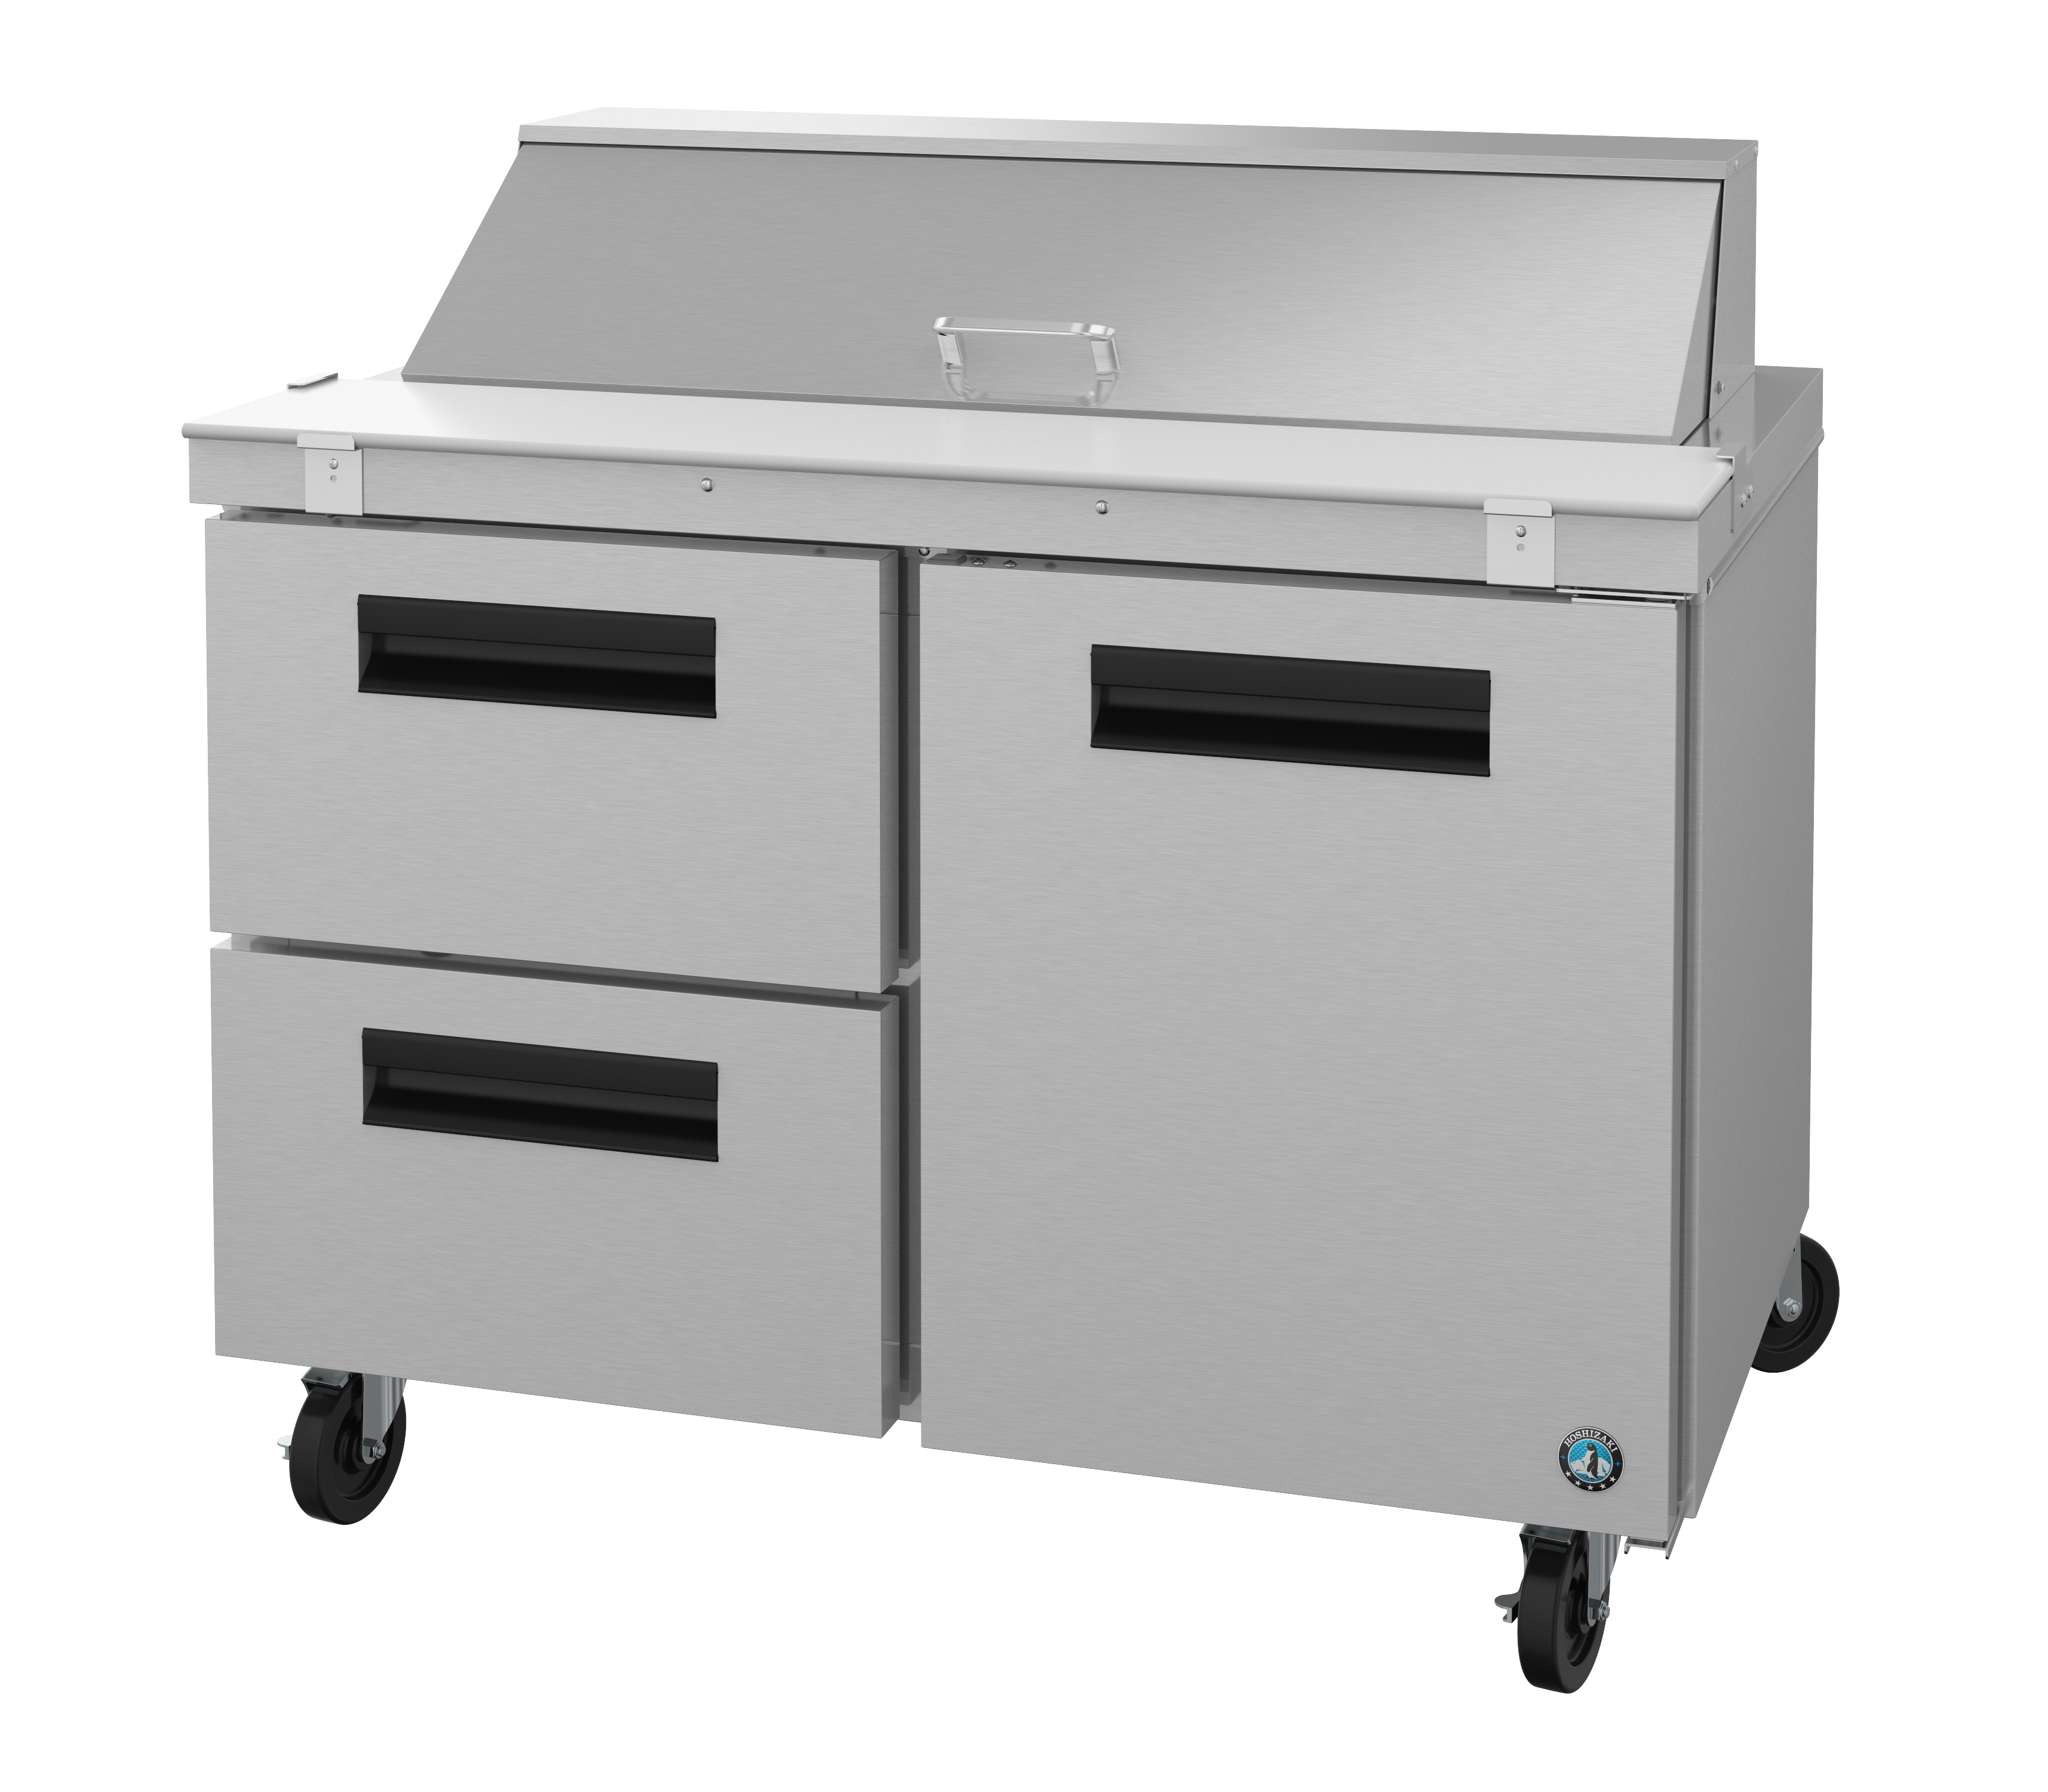 CRMR48-12D2-173x150 Product Release: Door/Drawer Combo - Sandwich Prep & Mega Top Prep Tables